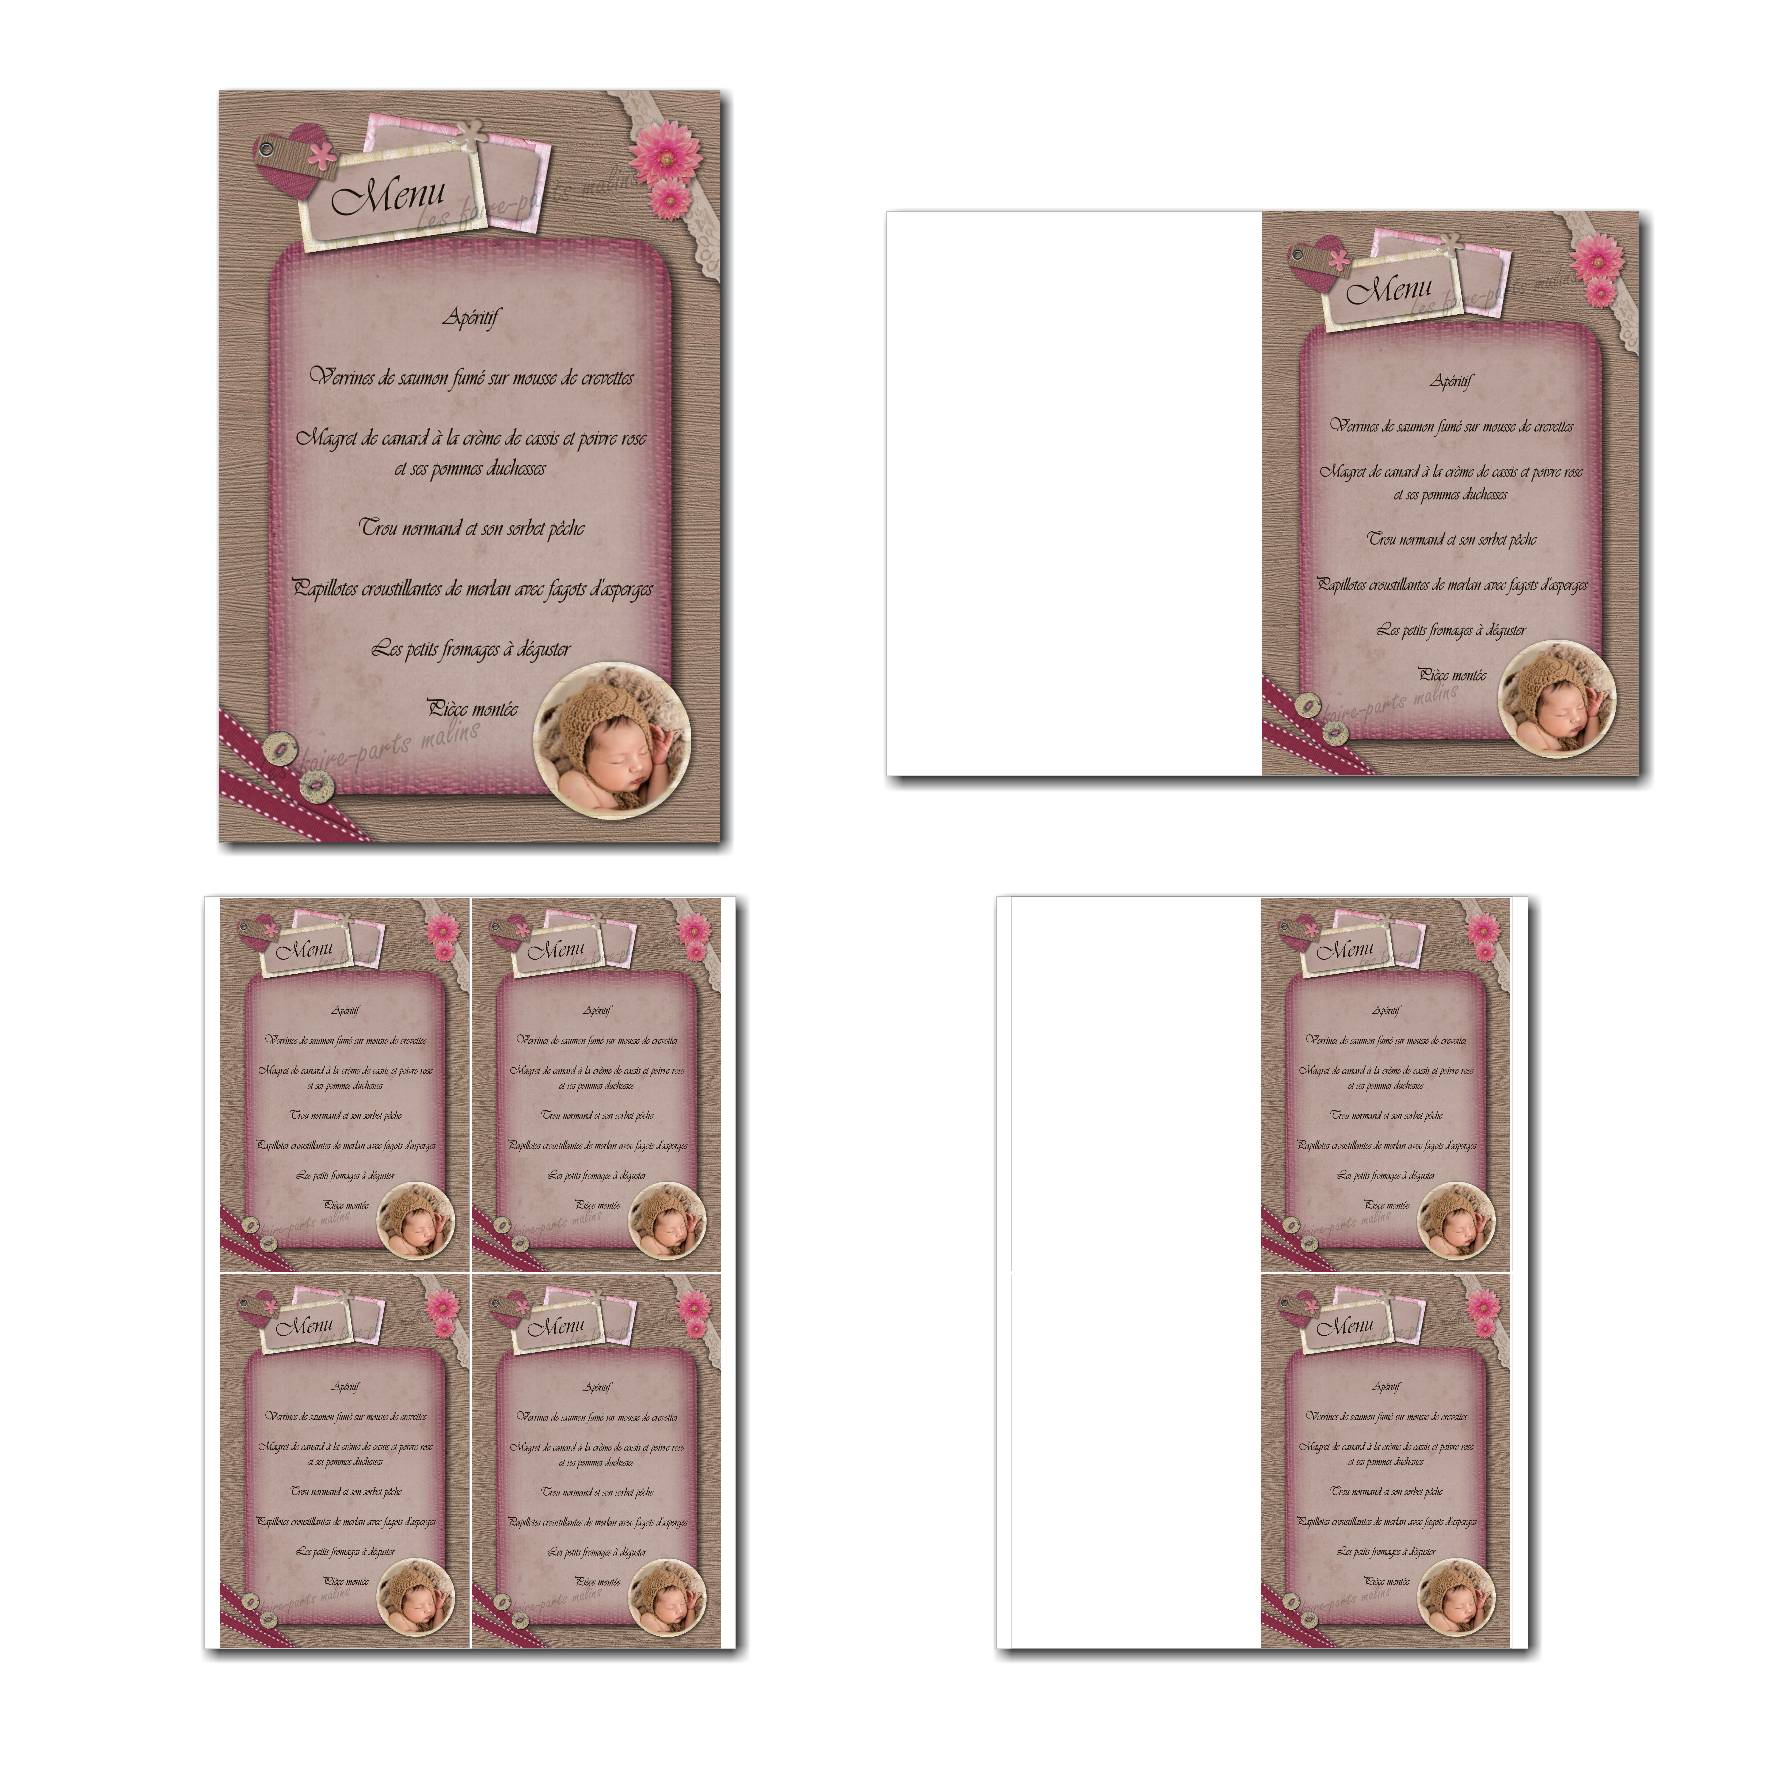 carte de menu prêt à imprimer ruban et bouton montage photo